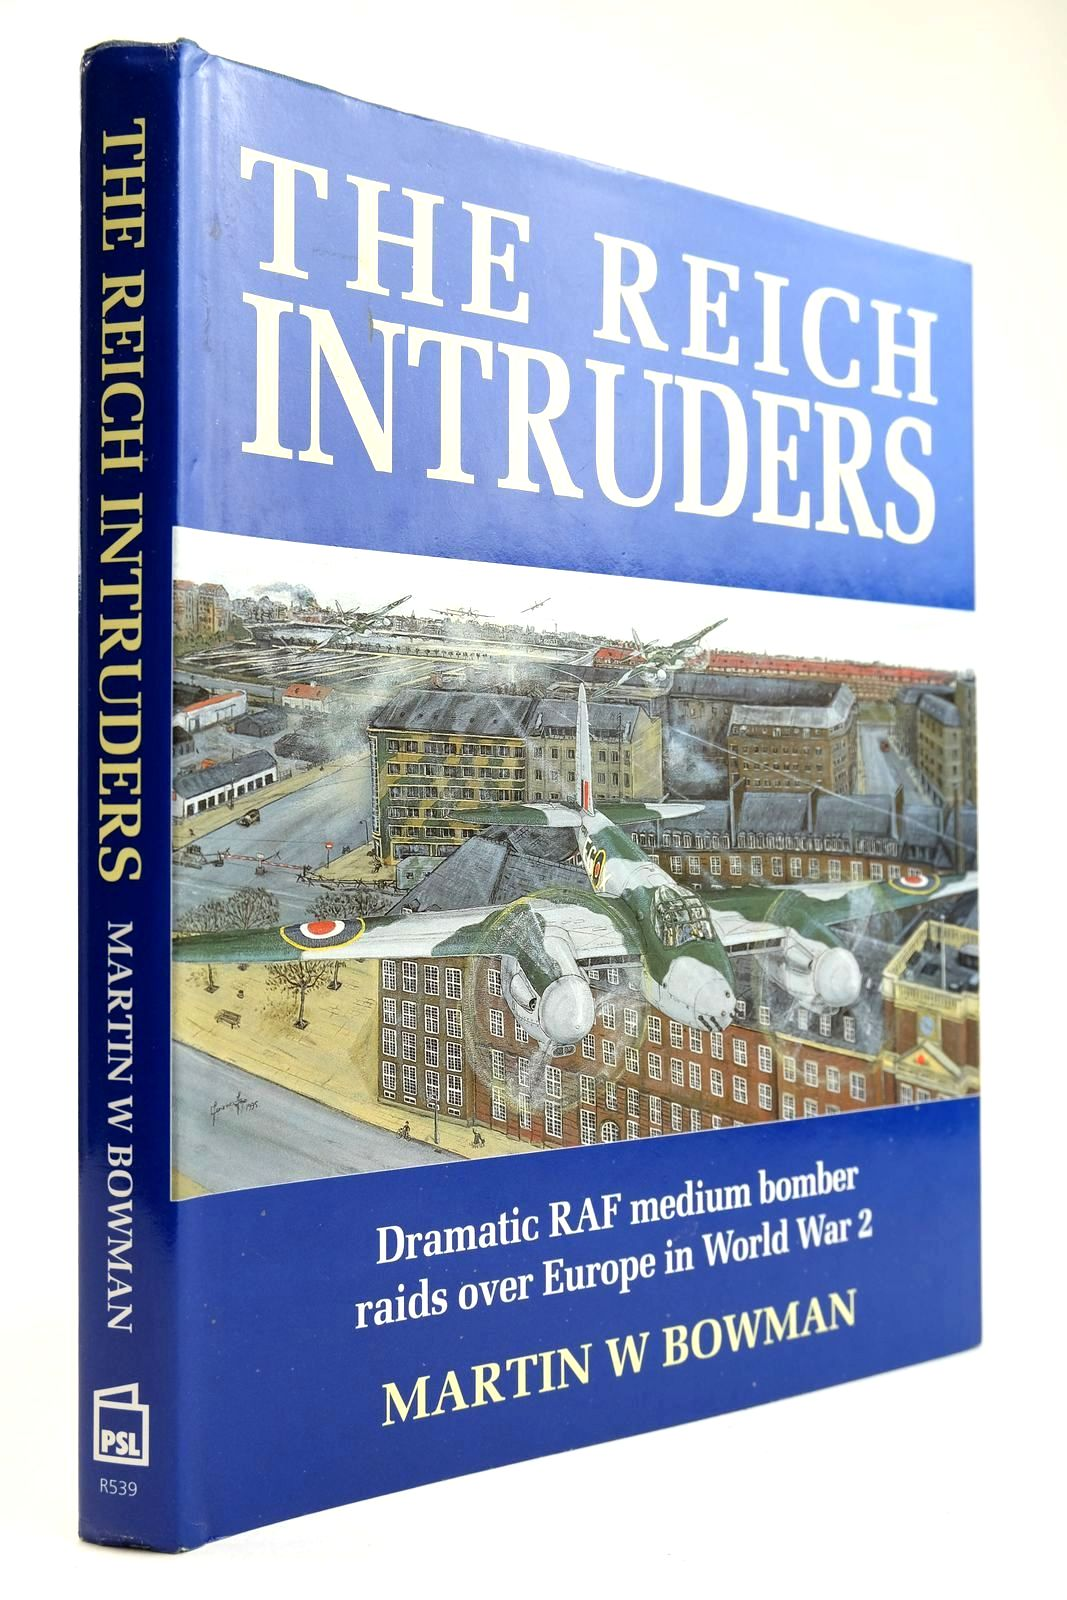 Photo of THE REICH INTRUDERS written by Bowman, Martin W. published by Patrick Stephens Limited (STOCK CODE: 2132175)  for sale by Stella & Rose's Books